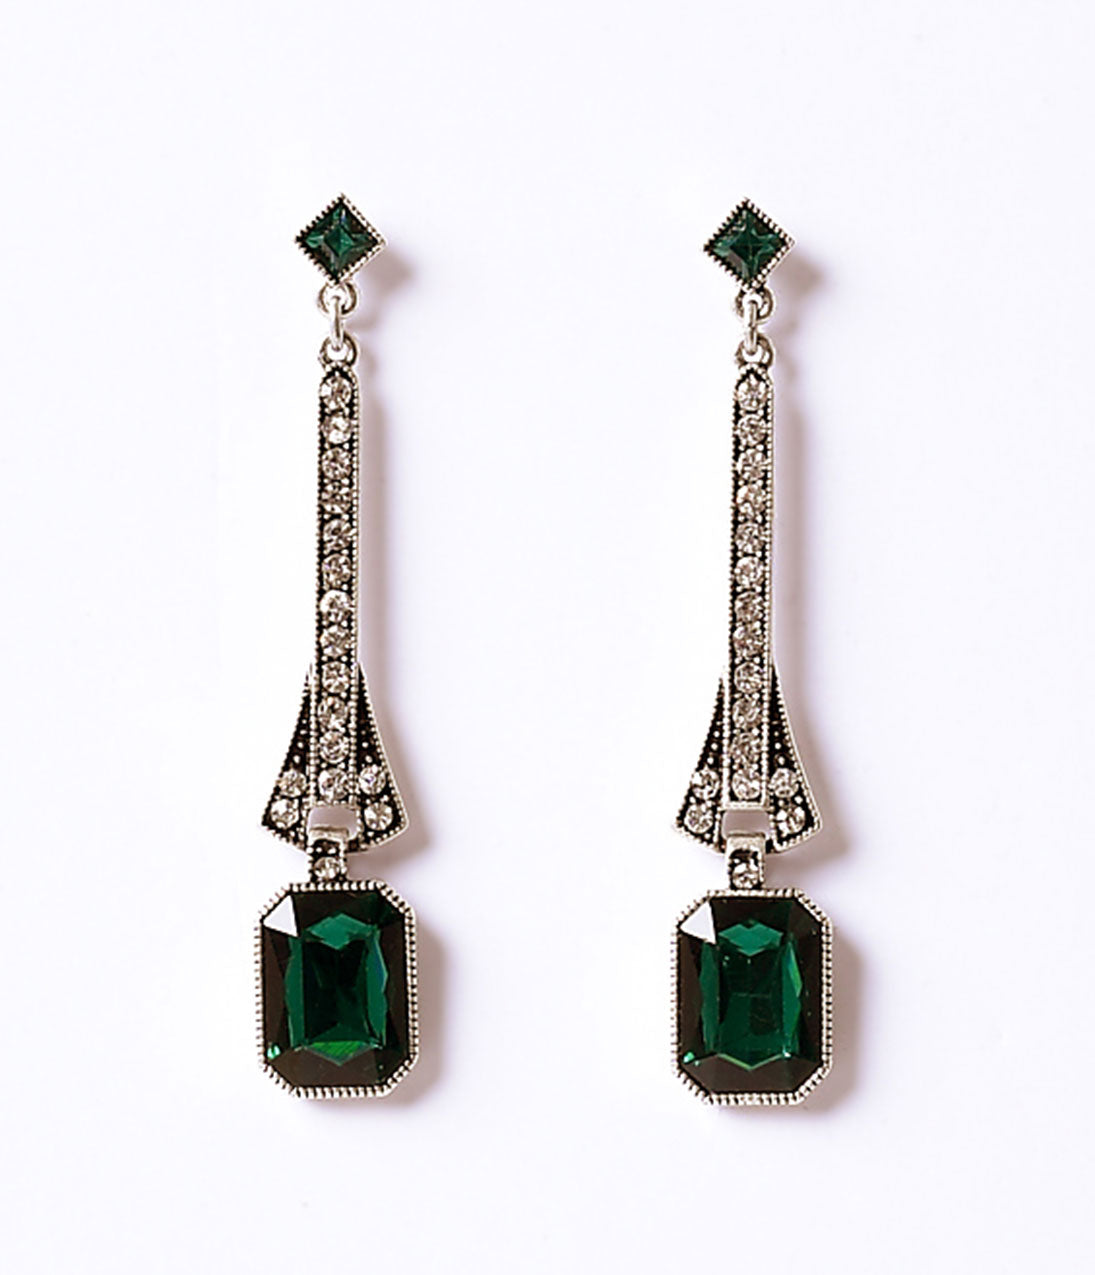 1920s Gatsby Jewelry- Flapper Earrings, Necklaces, Bracelets Deco Style Emerald  Silver Crystal Drop Post Earrings $28.00 AT vintagedancer.com